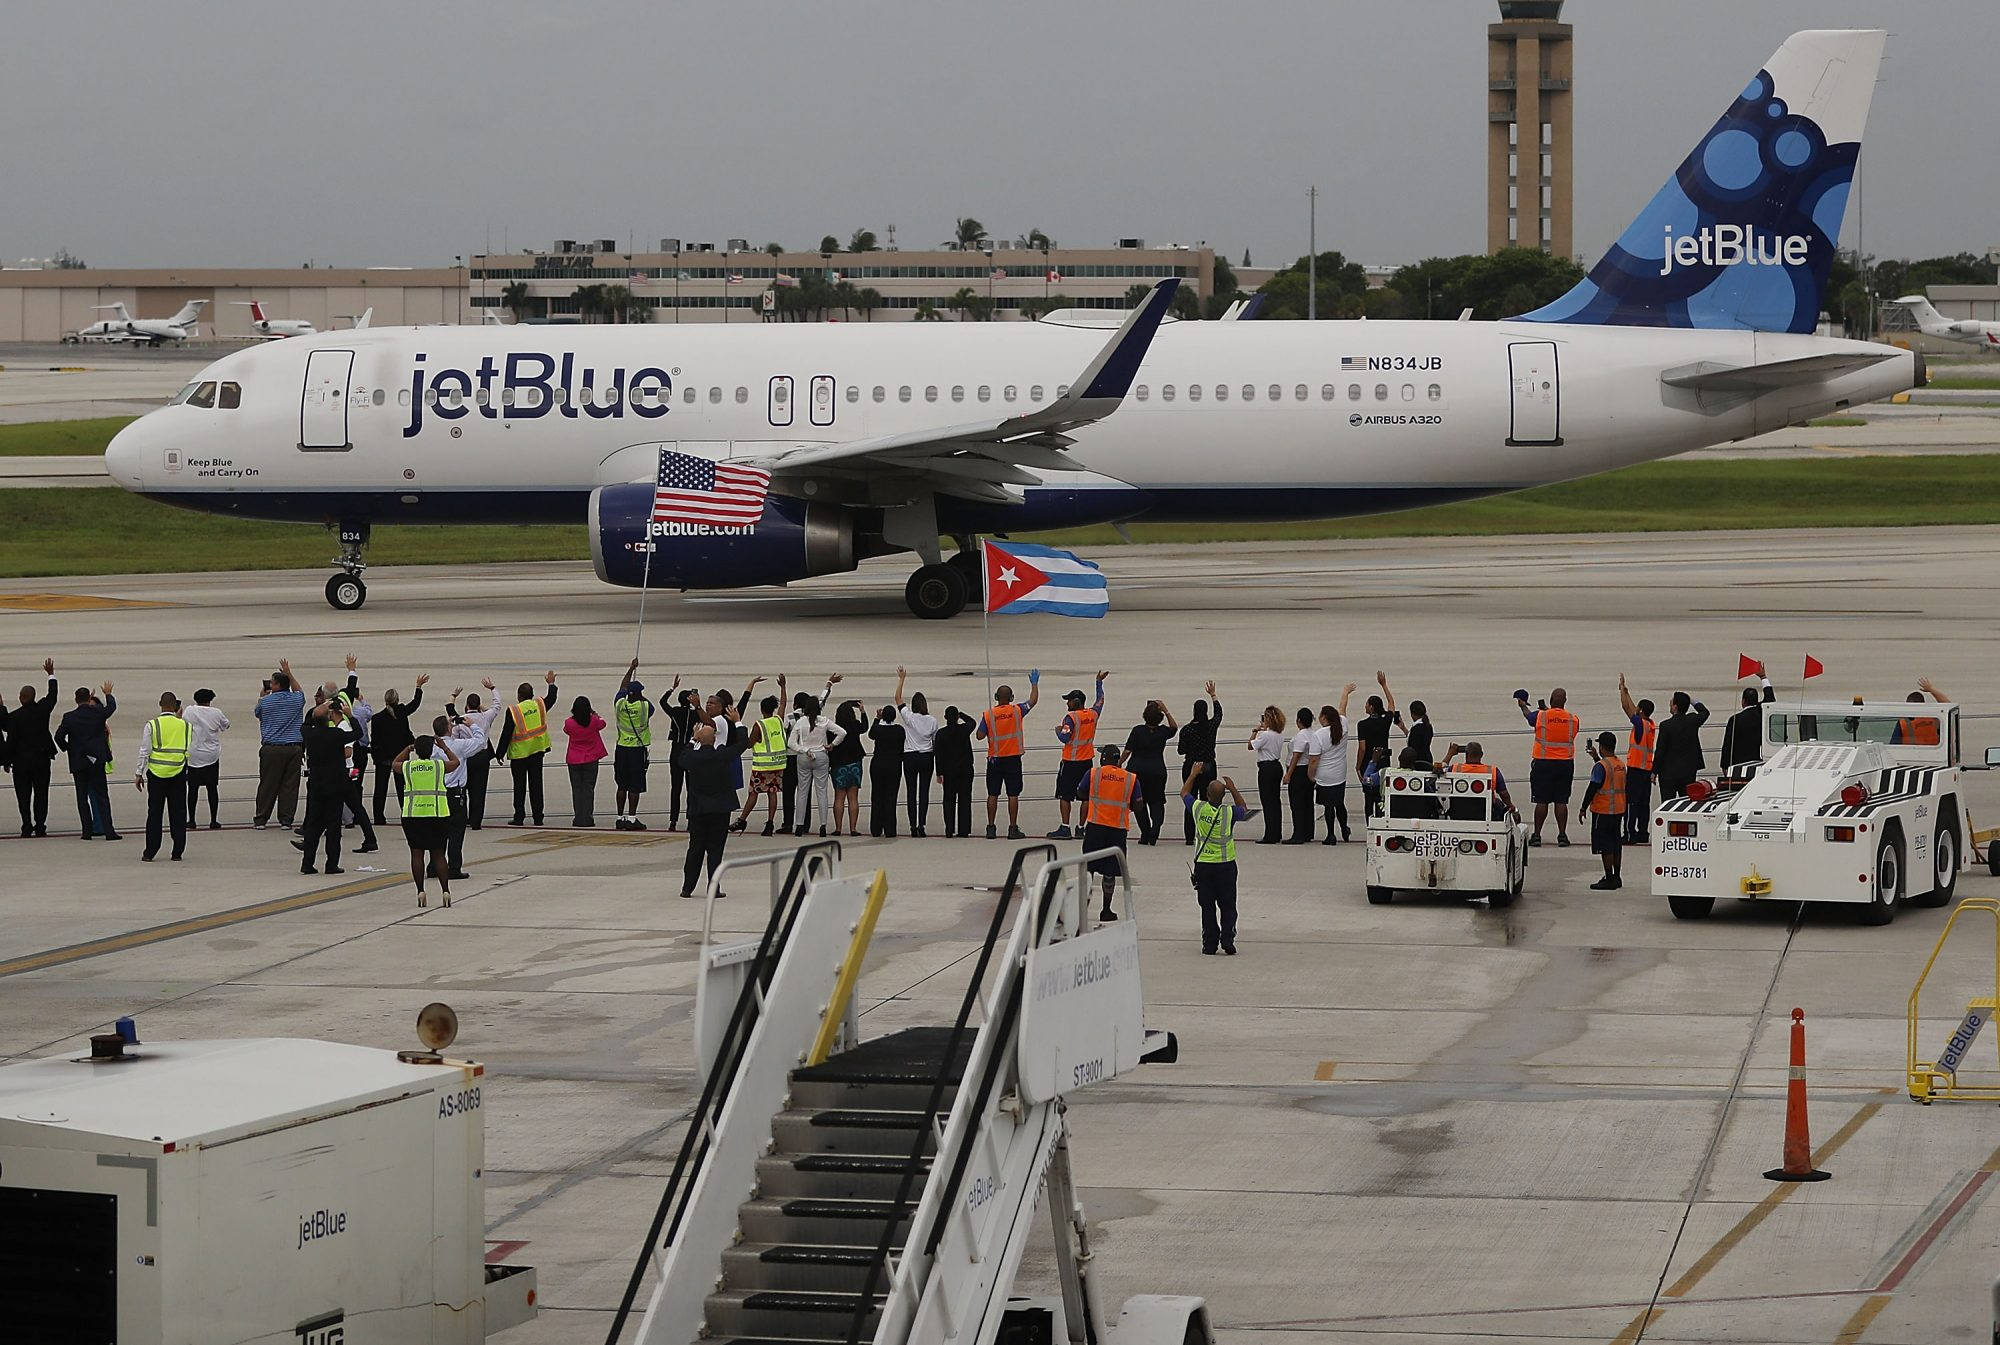 FORT LAUDERDALE, FL - AUGUST 31: Workers and officials watch as JetBlue Flight 387 prepares for take off as it becomes the first scheduled commercial flight to Cuba since 1961 on August 31, 2016 in Fort Lauderdale, Florida. JetBlue which hopes to have as many as 110 daily flights is the first U.S. airline to resume regularly scheduled airline service under new rules allowing Americans greater access to Cuba. (Photo by Joe Raedle/Getty Images)